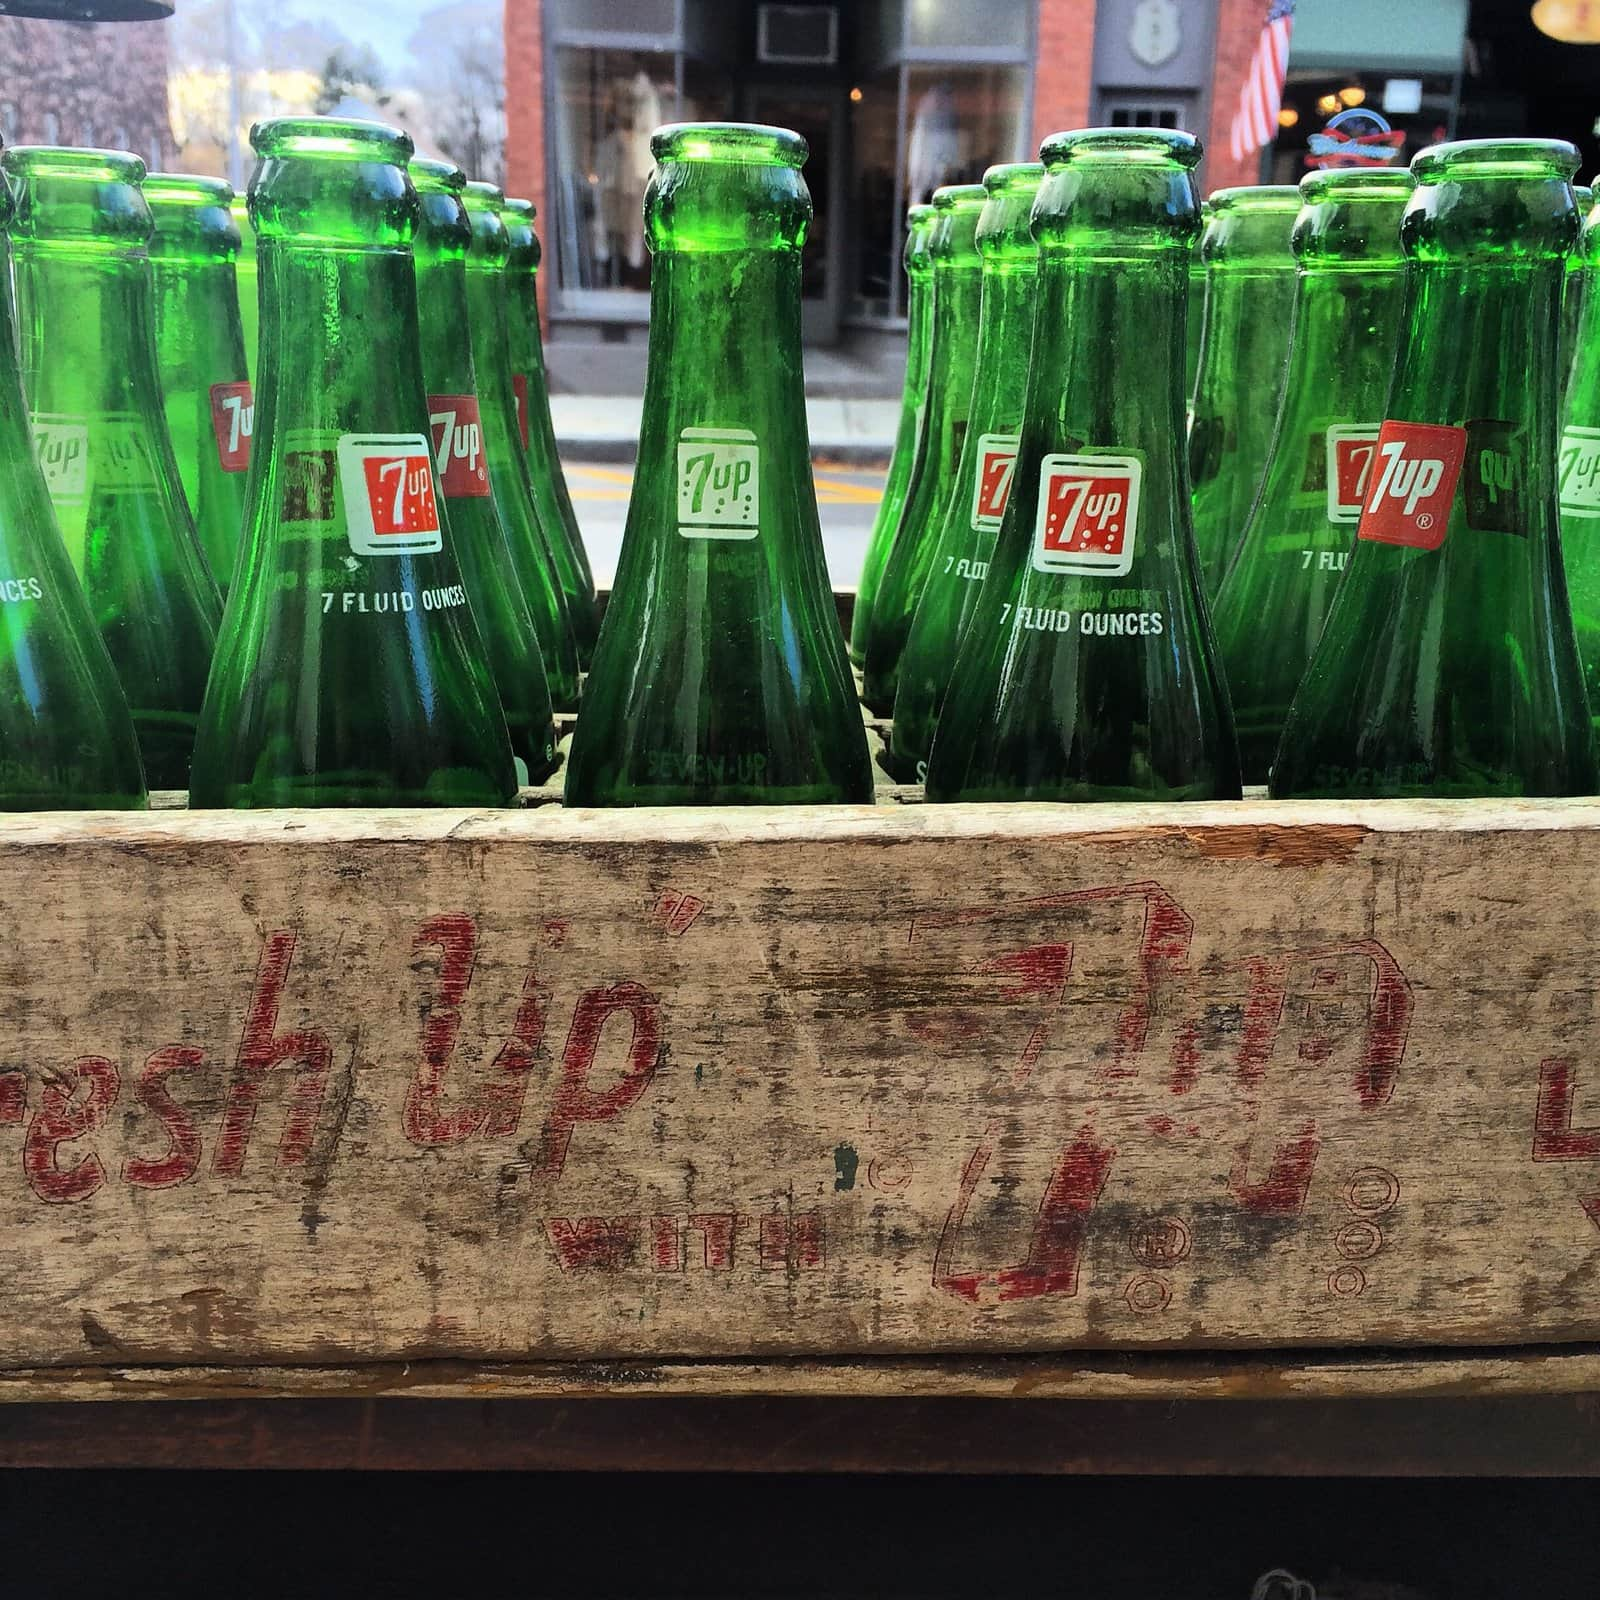 Old-fashioned green 7-UP soda bottles